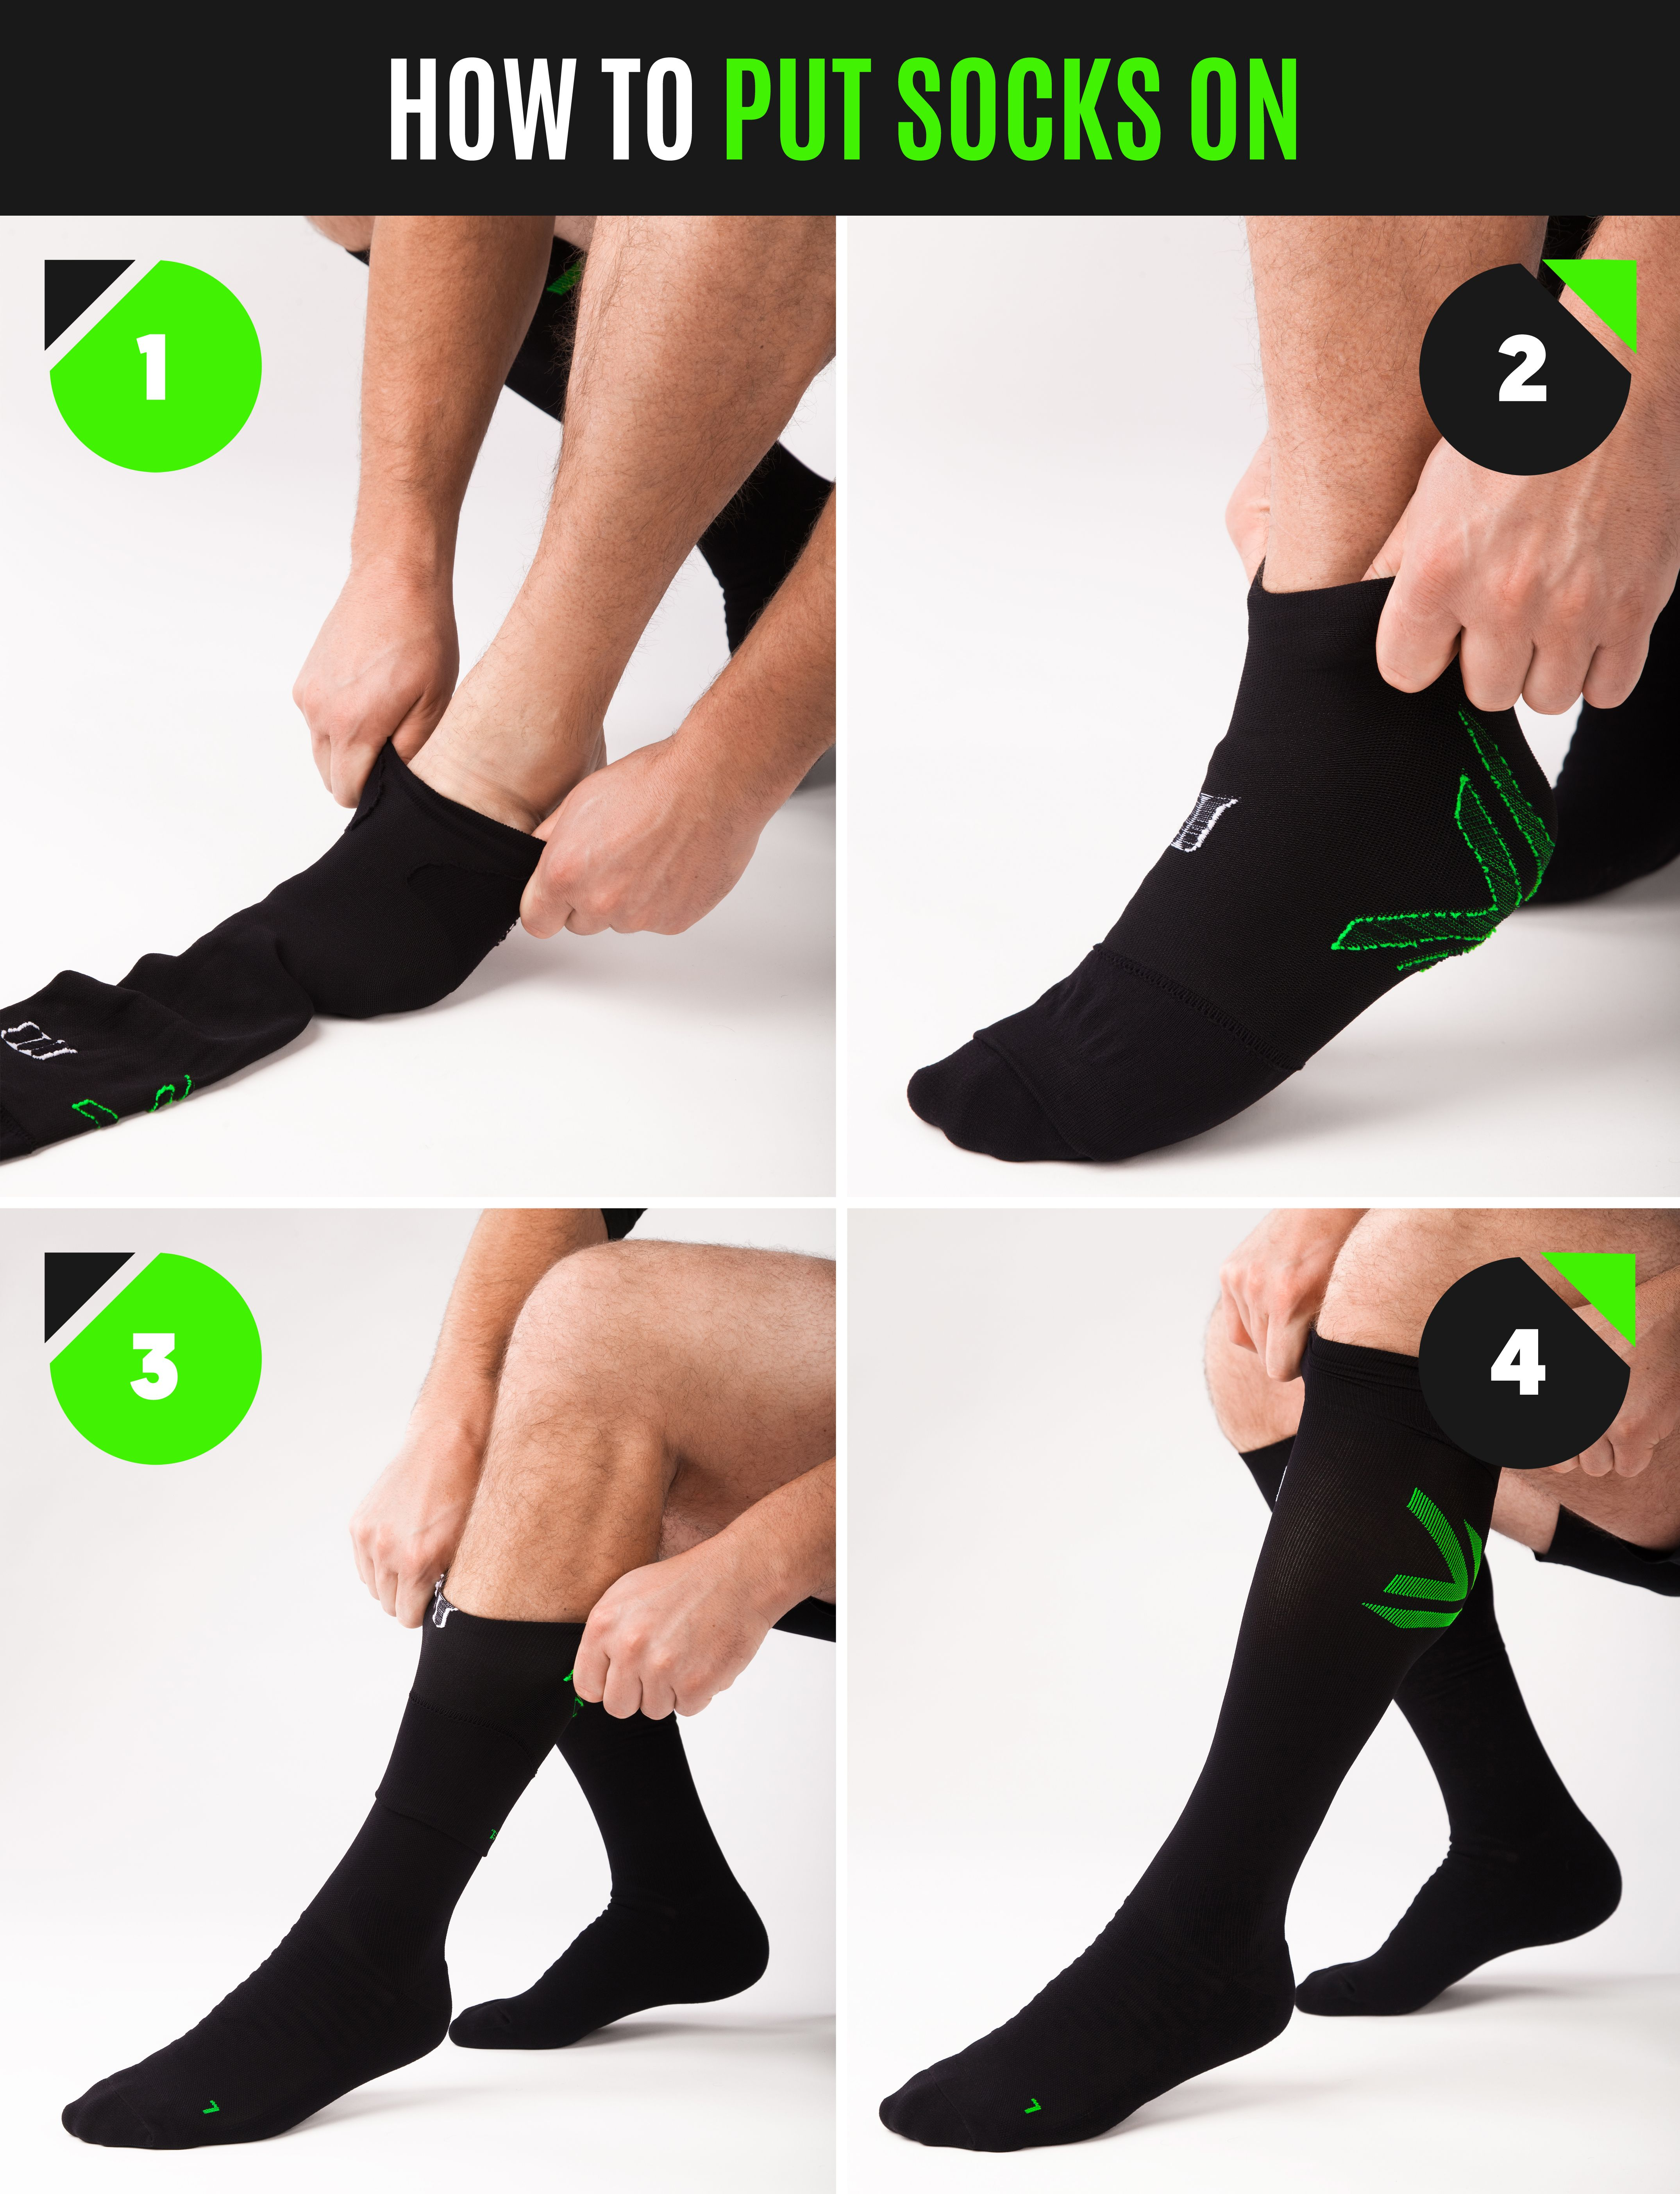 How To Put Compression Socks On Step 1 Insert Your Hand And Grab The Sock At The Top Of The Heel Pocket While Compression Socks Mens Socks Compression Socks